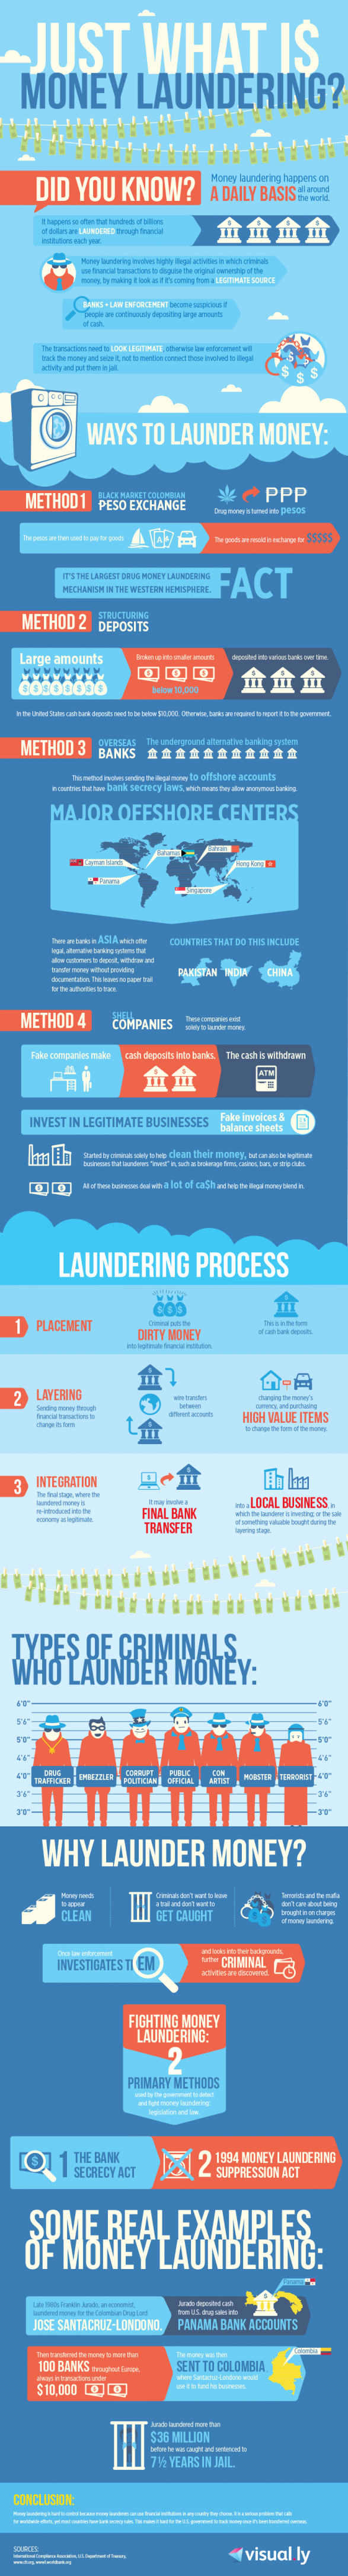 Just What Is Money Laundering?